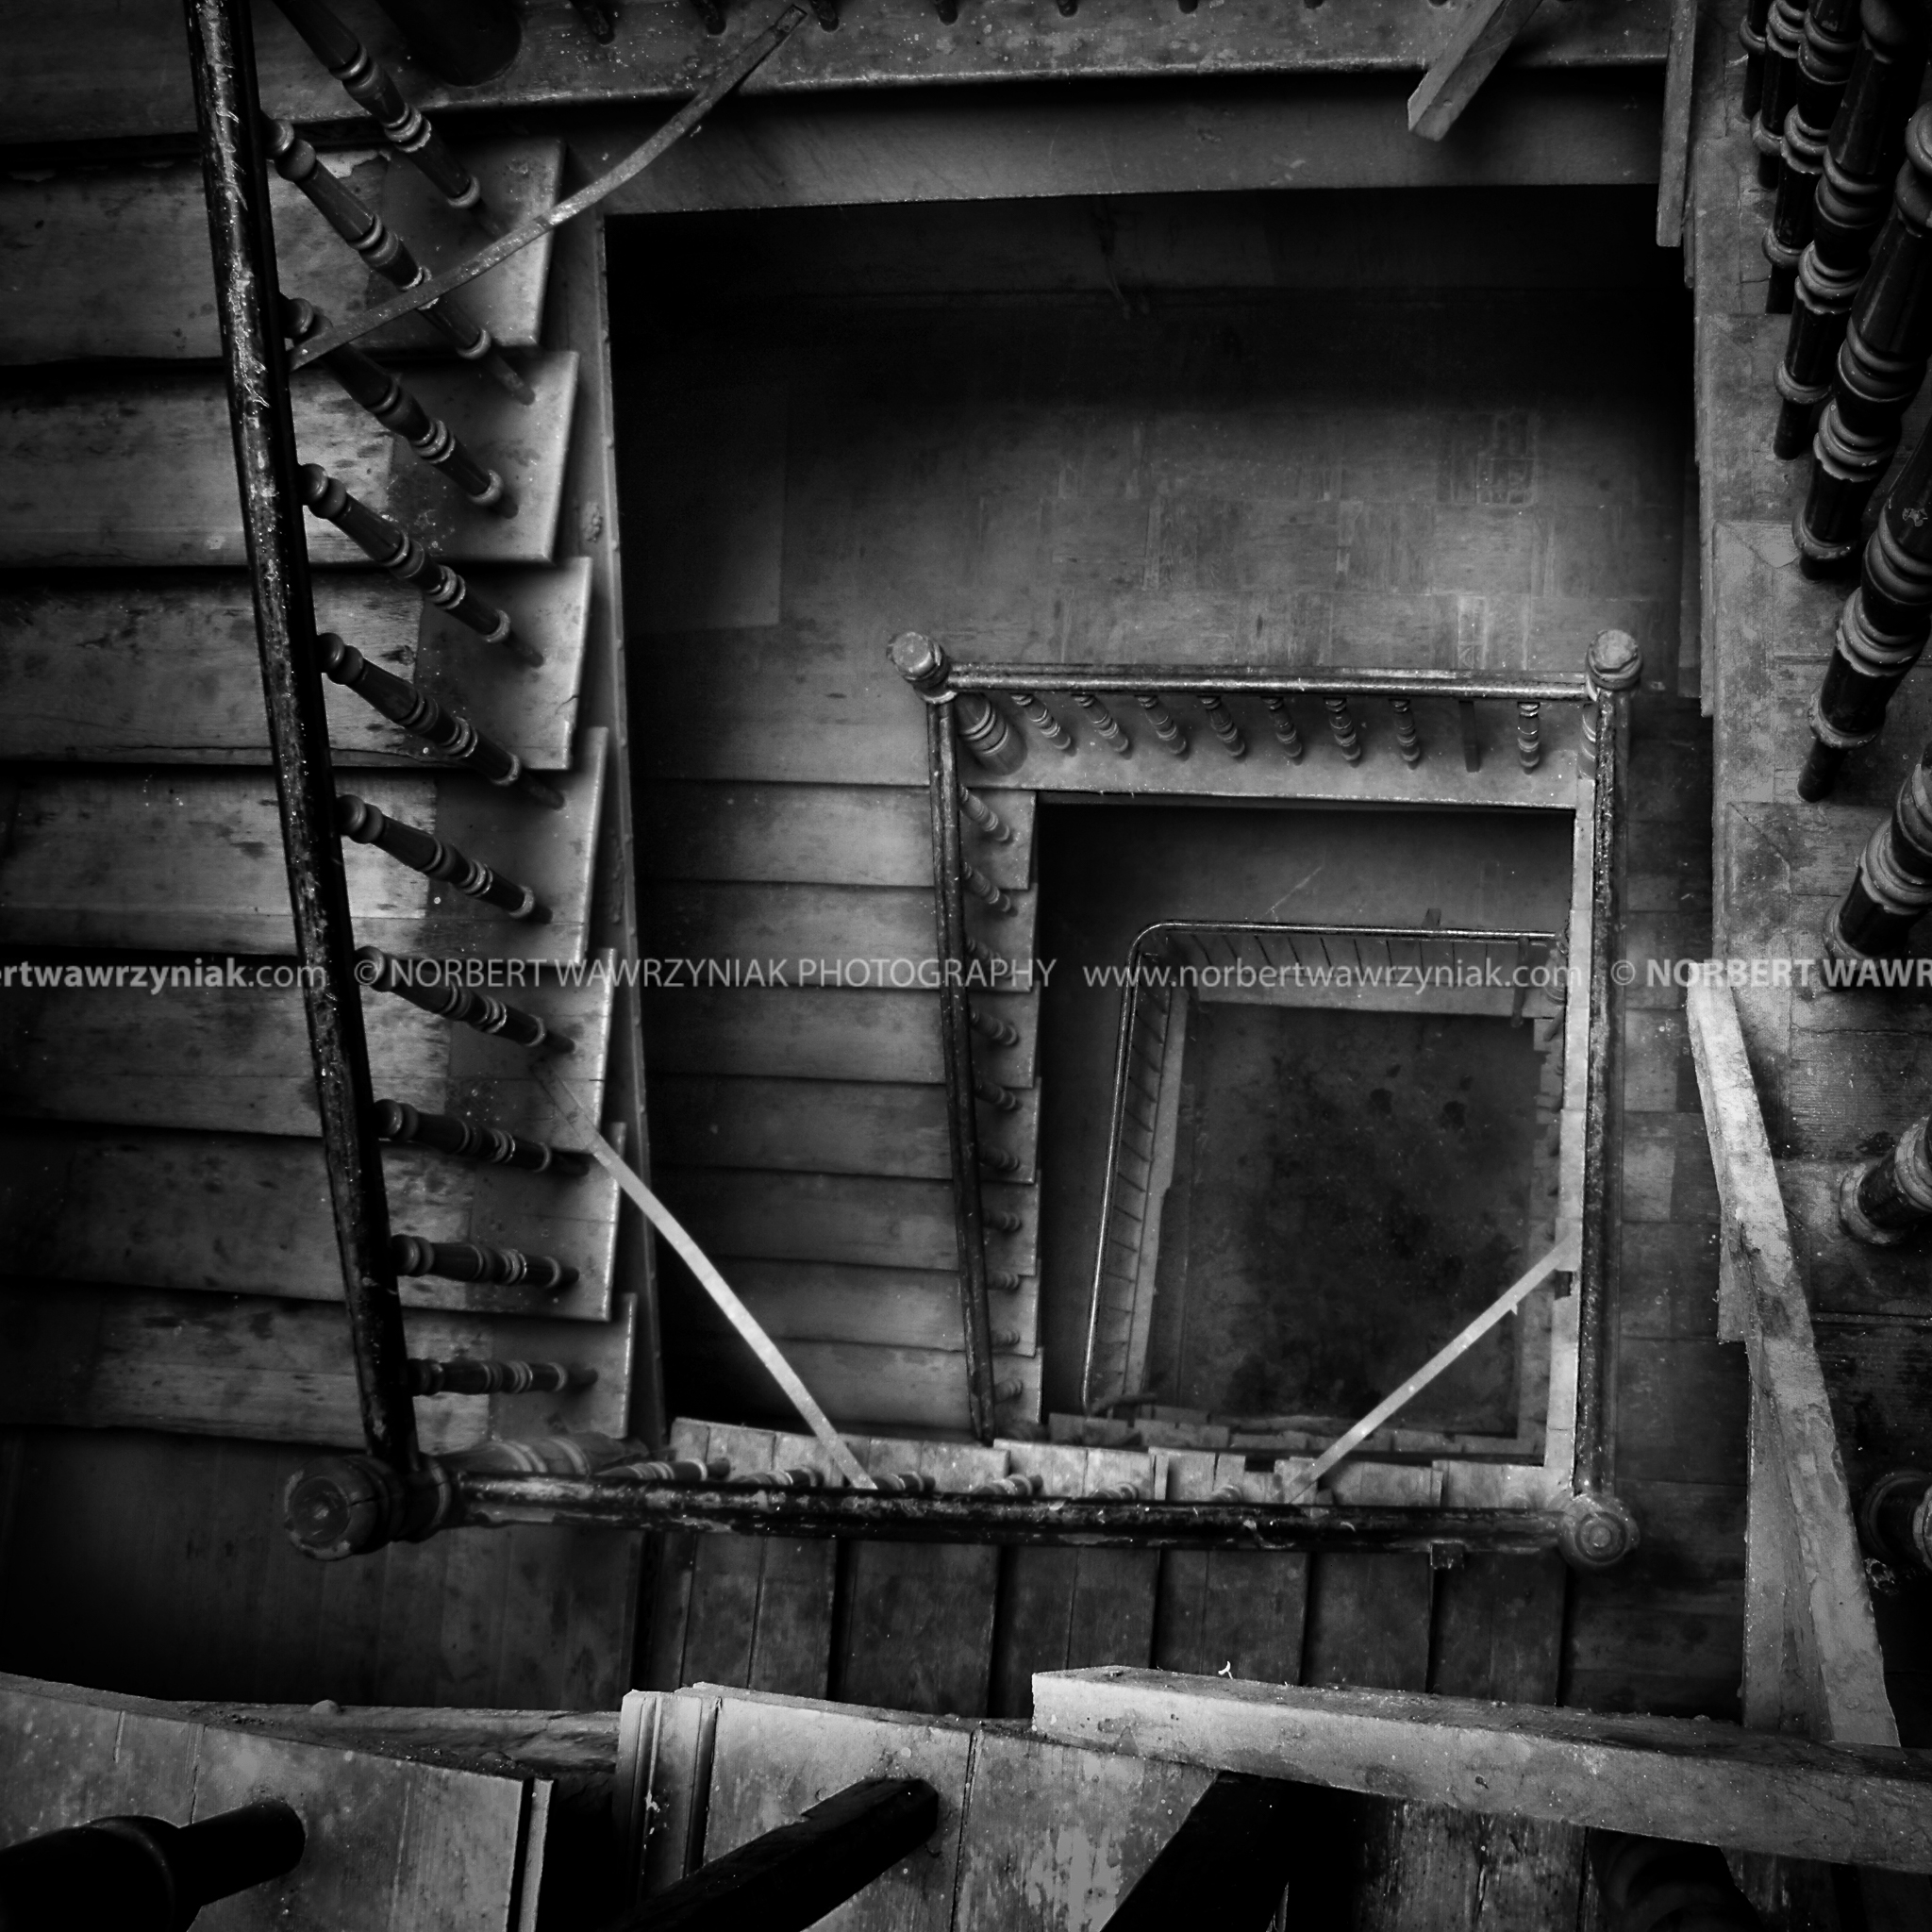 Stairs VIII – Poland, Wroclaw